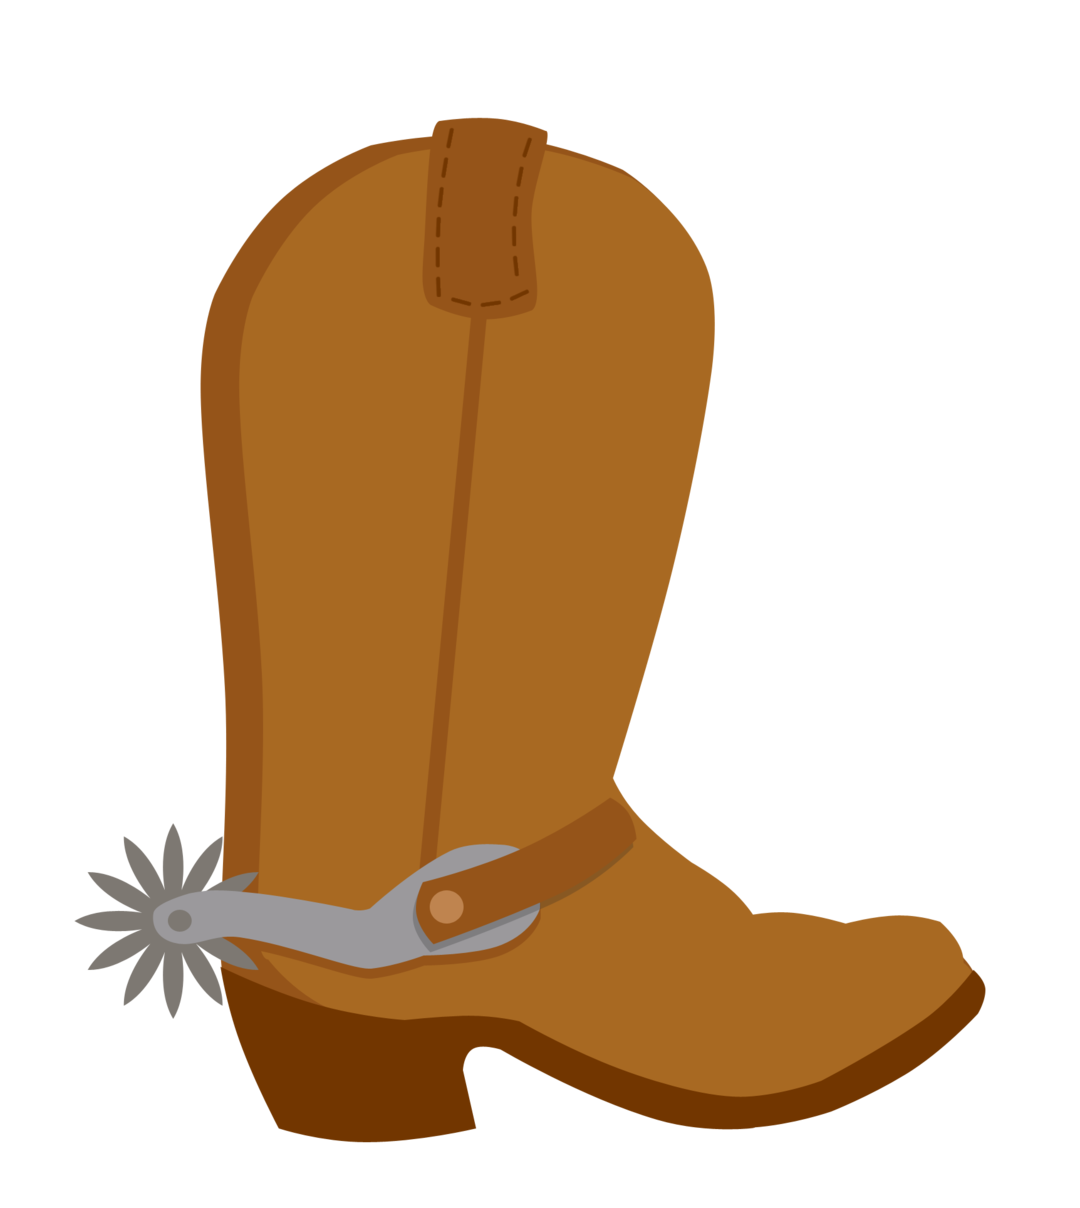 Country png. Collection of free boots